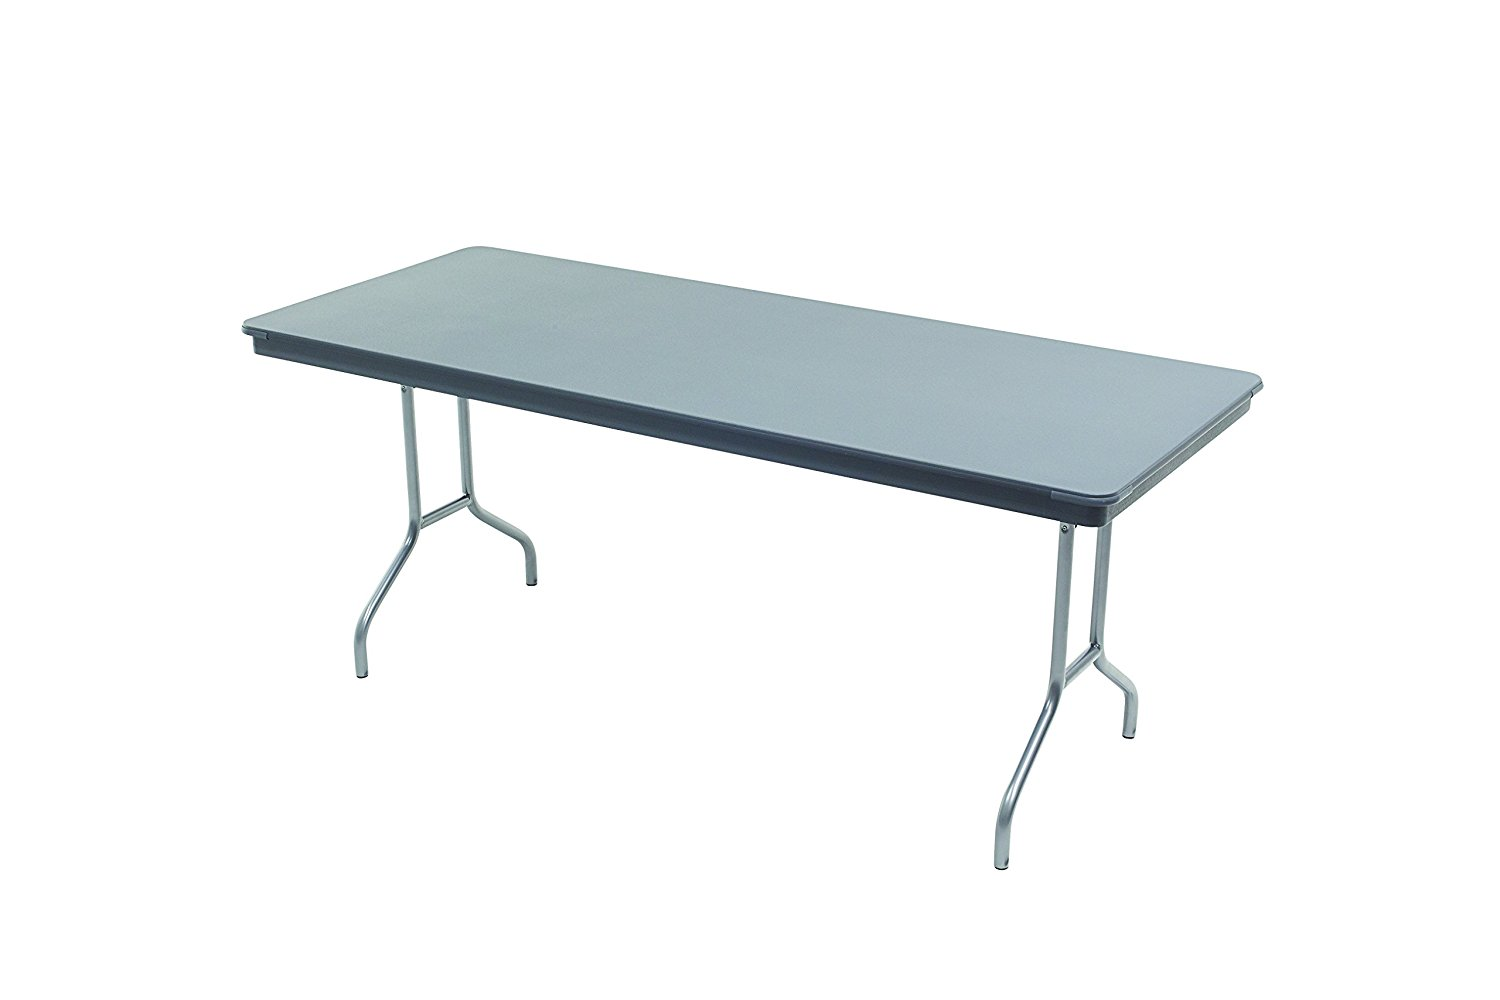 """Dynalite Featherweight Heavy, Duty ABS Plastic Folding Table, Rectangle, 36""""W x 96""""L x 29""""H"""